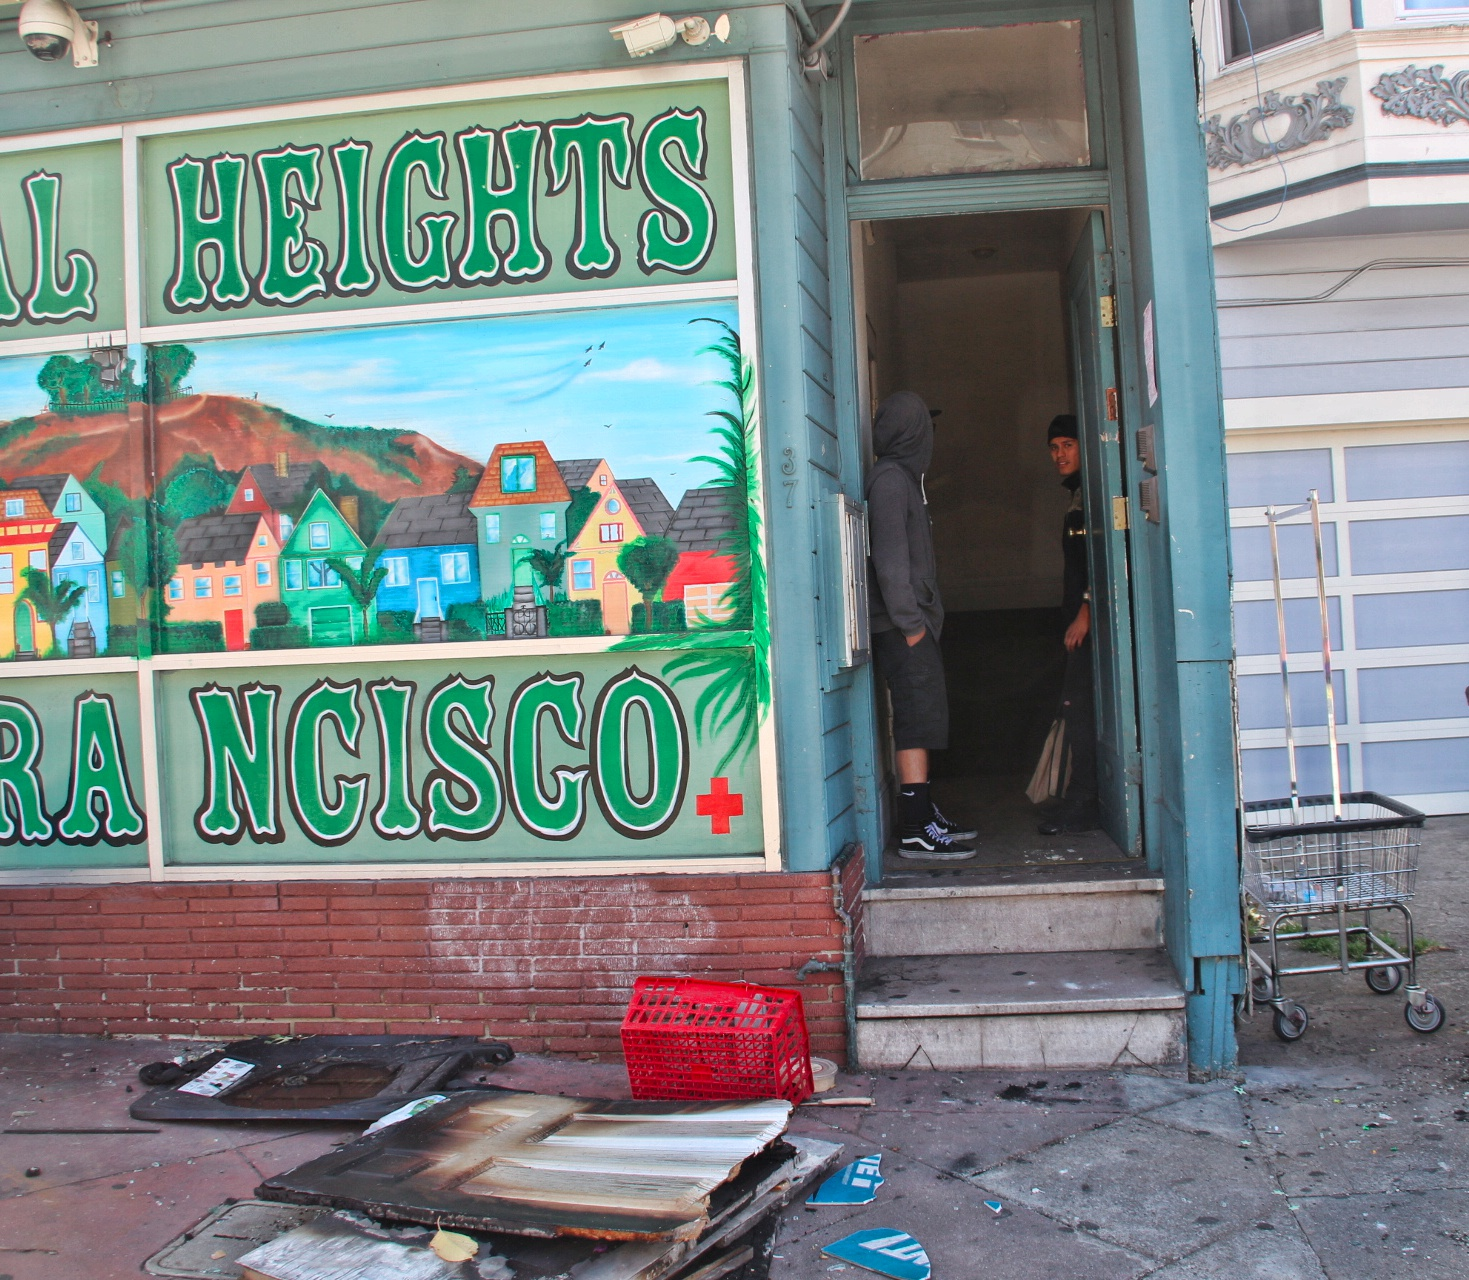 Residents stand at the doorstep of their building two days after the fire on 29th & Mission. Photo by Sana Saleem.